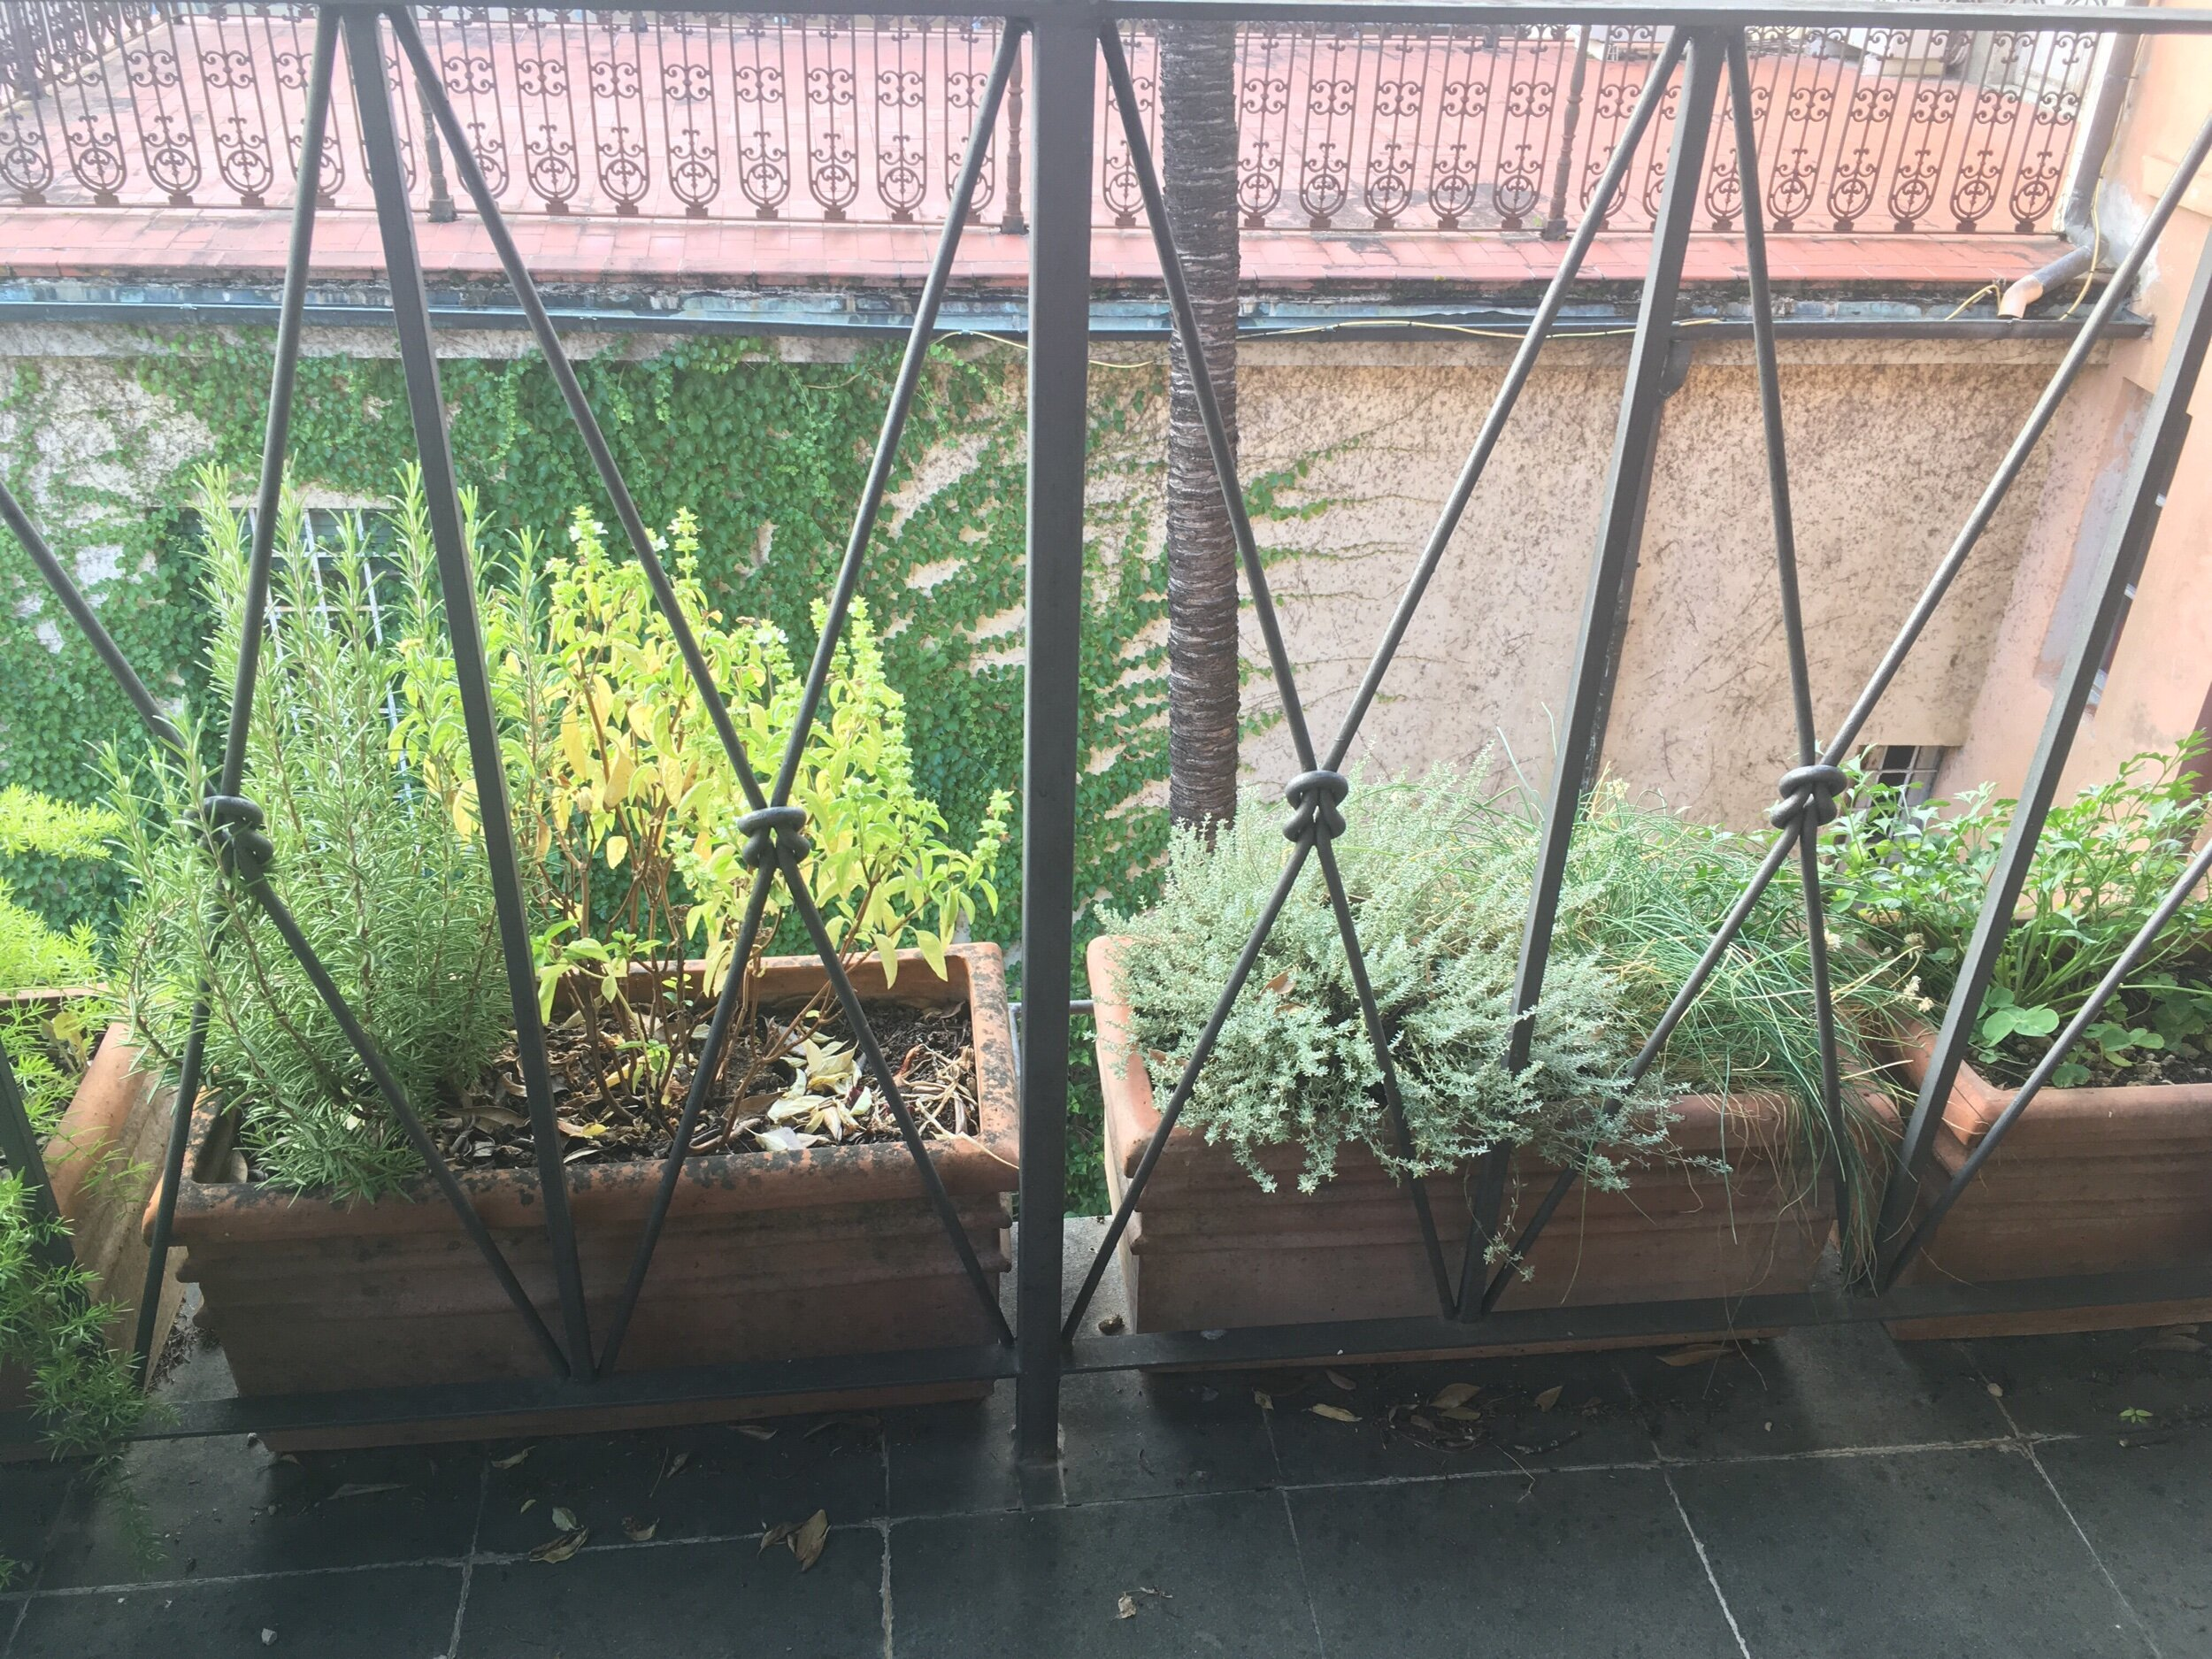 I have some herbs growing on my terrace - but which ones should I use in my peposo?